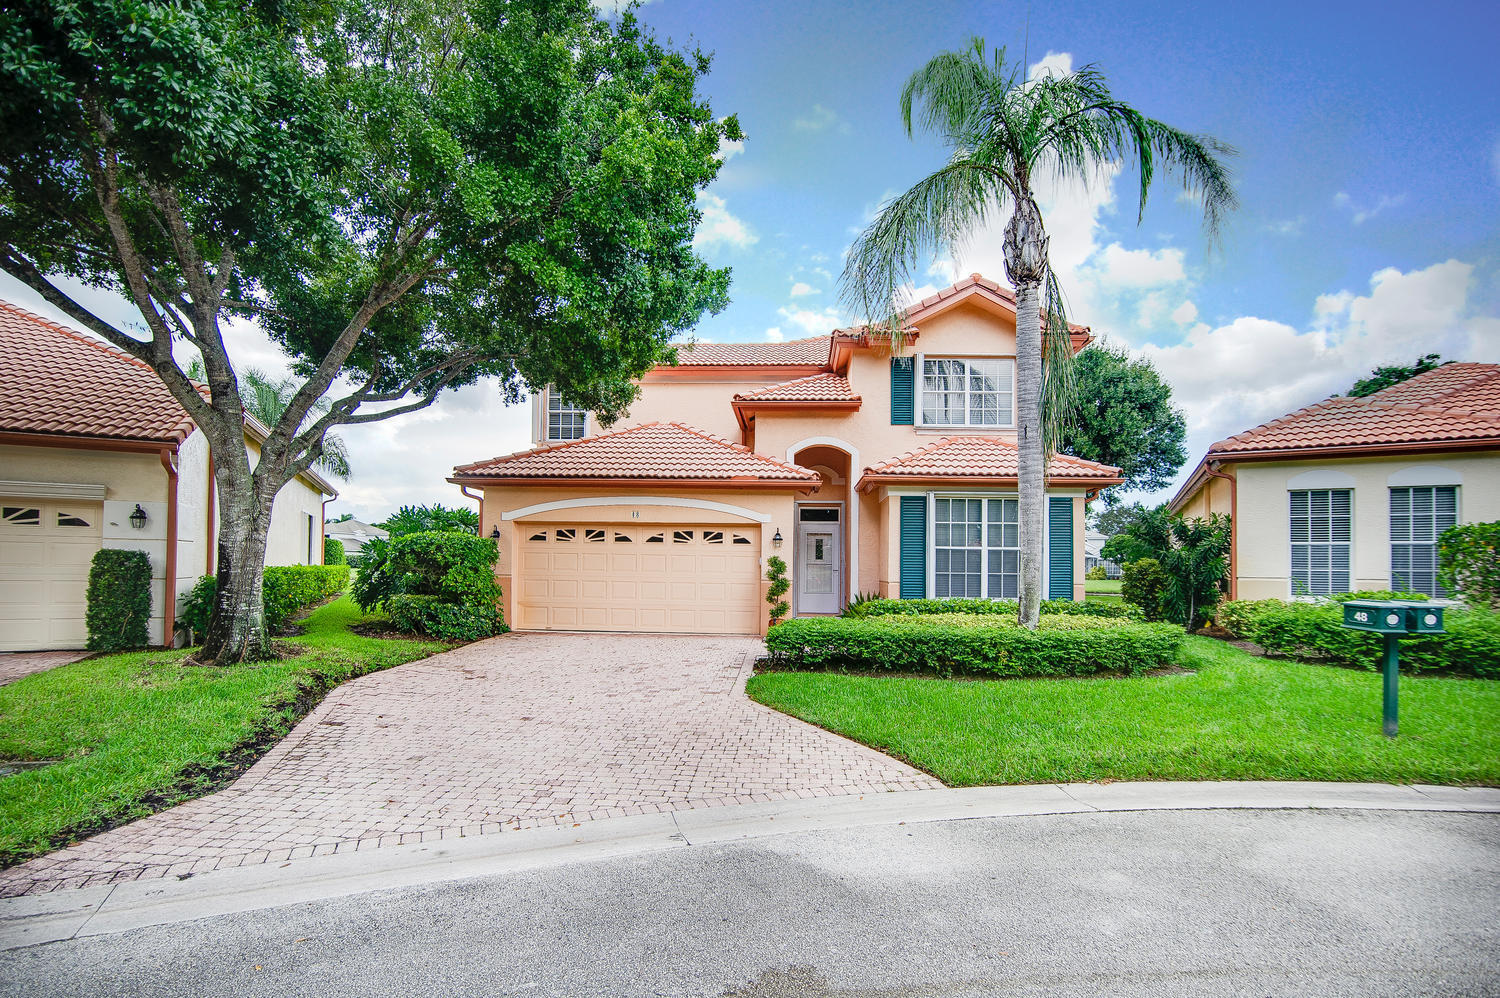 48 Pinnacle Cove, Palm Beach Gardens, Florida 33418, 4 Bedrooms Bedrooms, ,3 BathroomsBathrooms,A,Single family,Pinnacle,RX-10468253